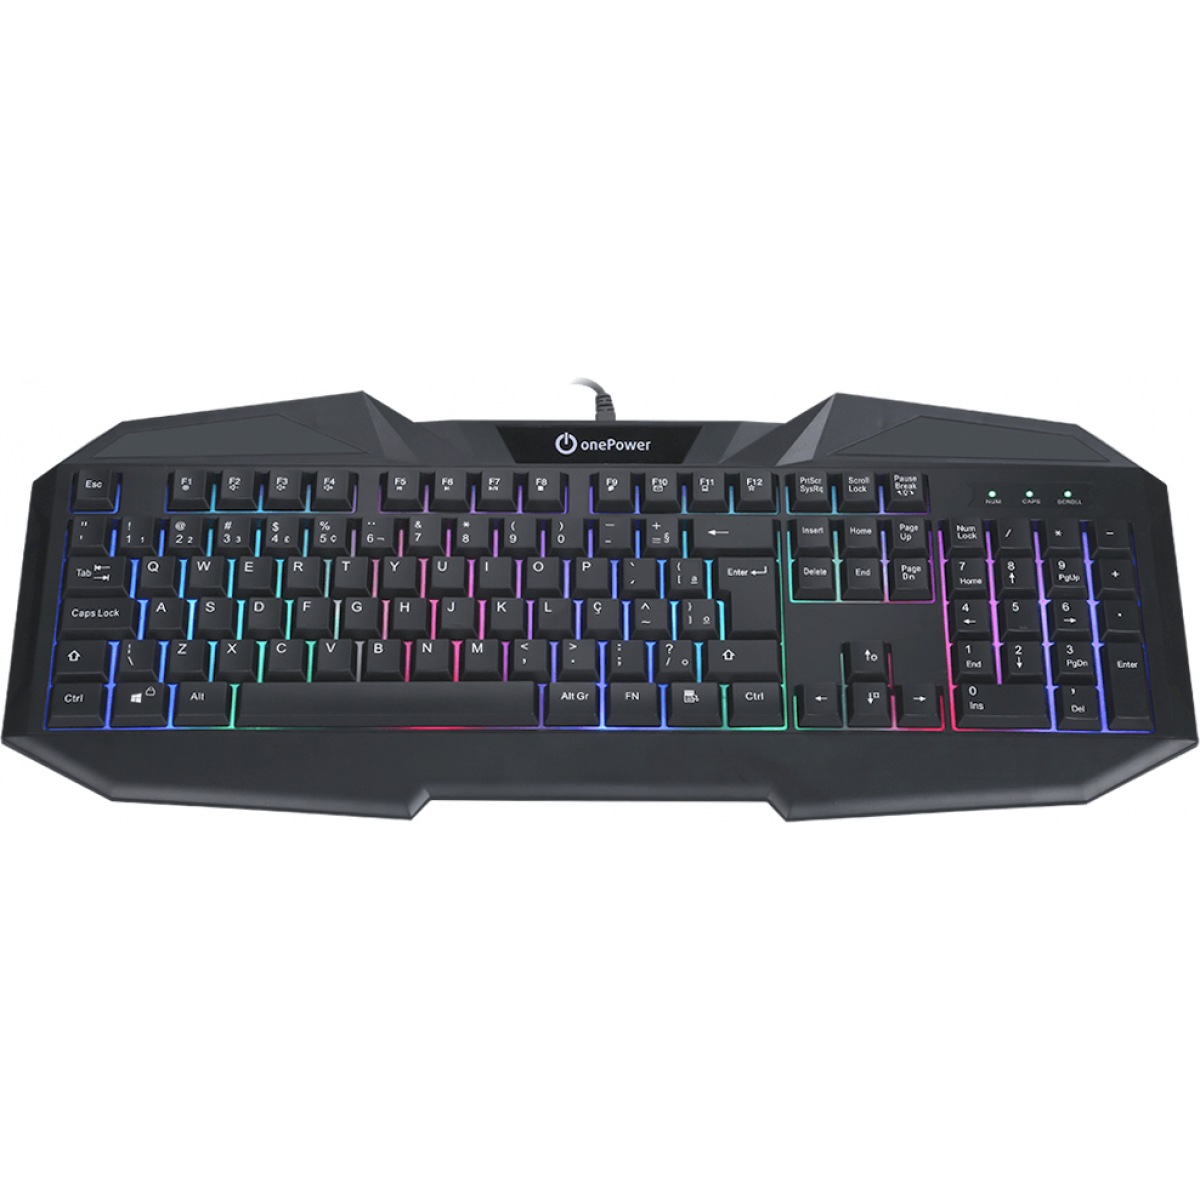 Teclado Gamer OnePower KD-623 Rainbow, ABNT2, Black